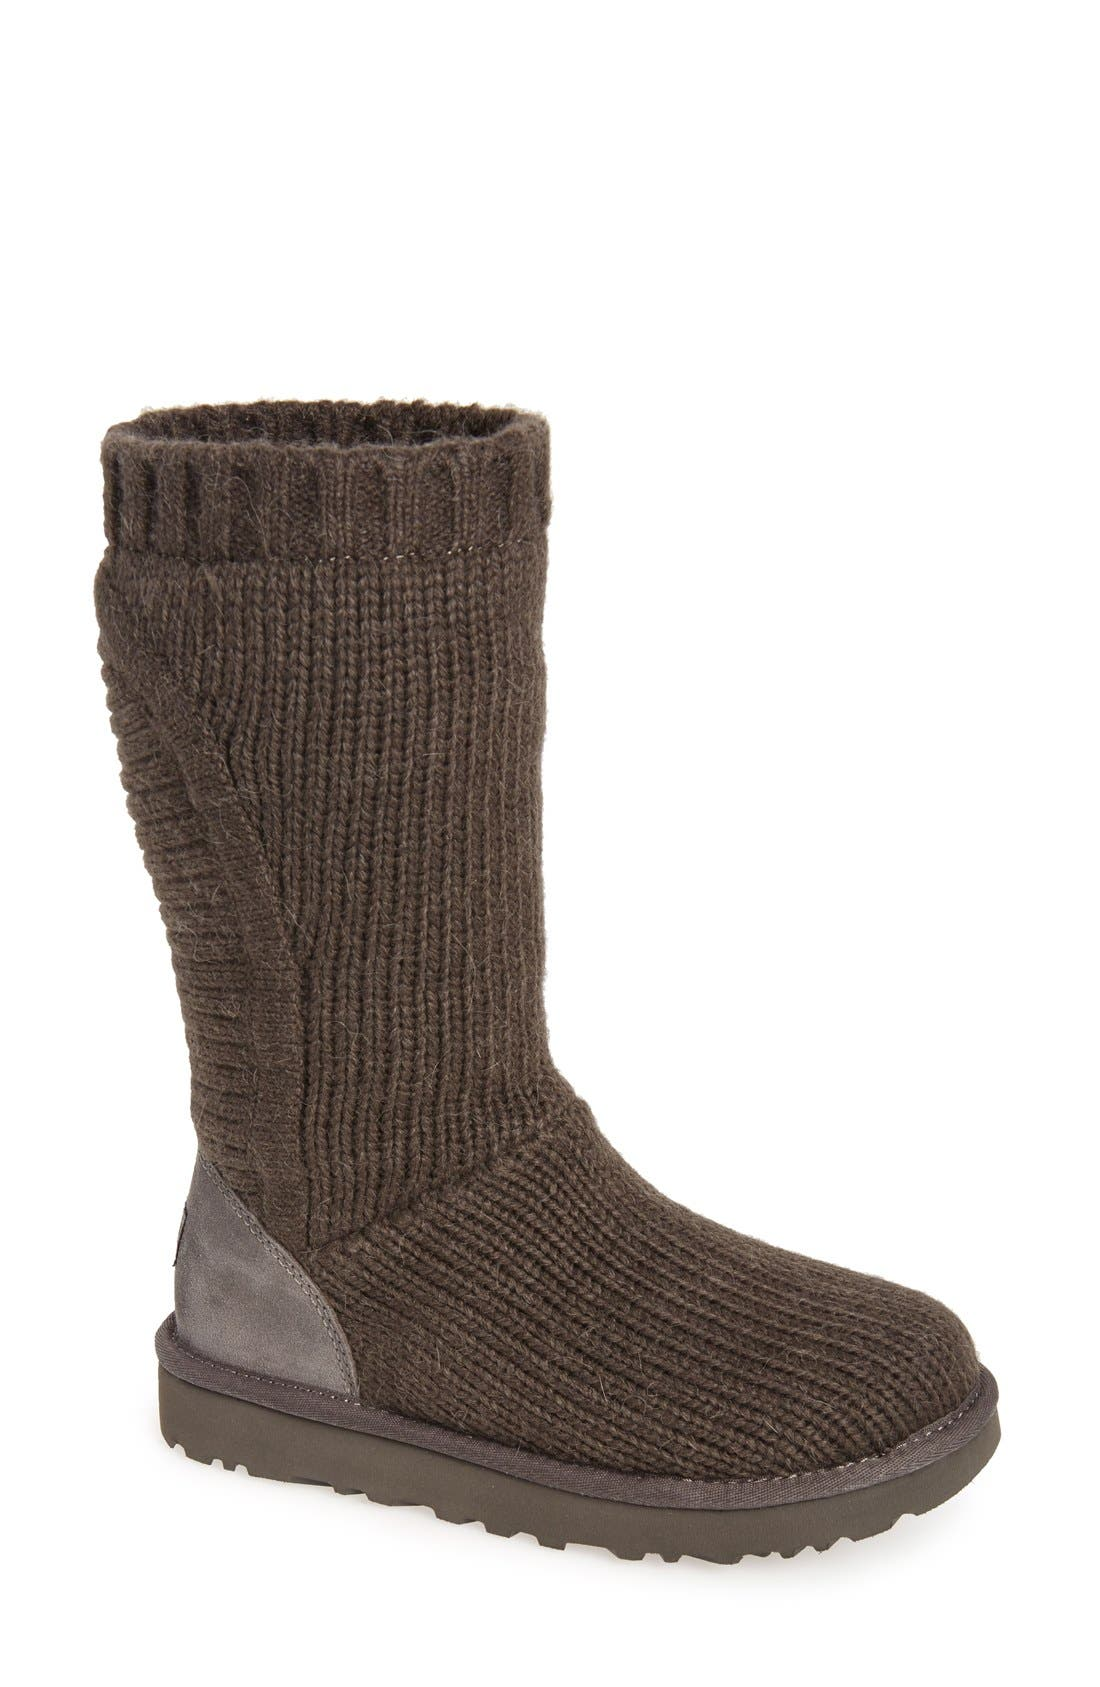 'Capra' Ribbed Knit Genuine Shearling Lined Boot,                         Main,                         color, Grey Fabric